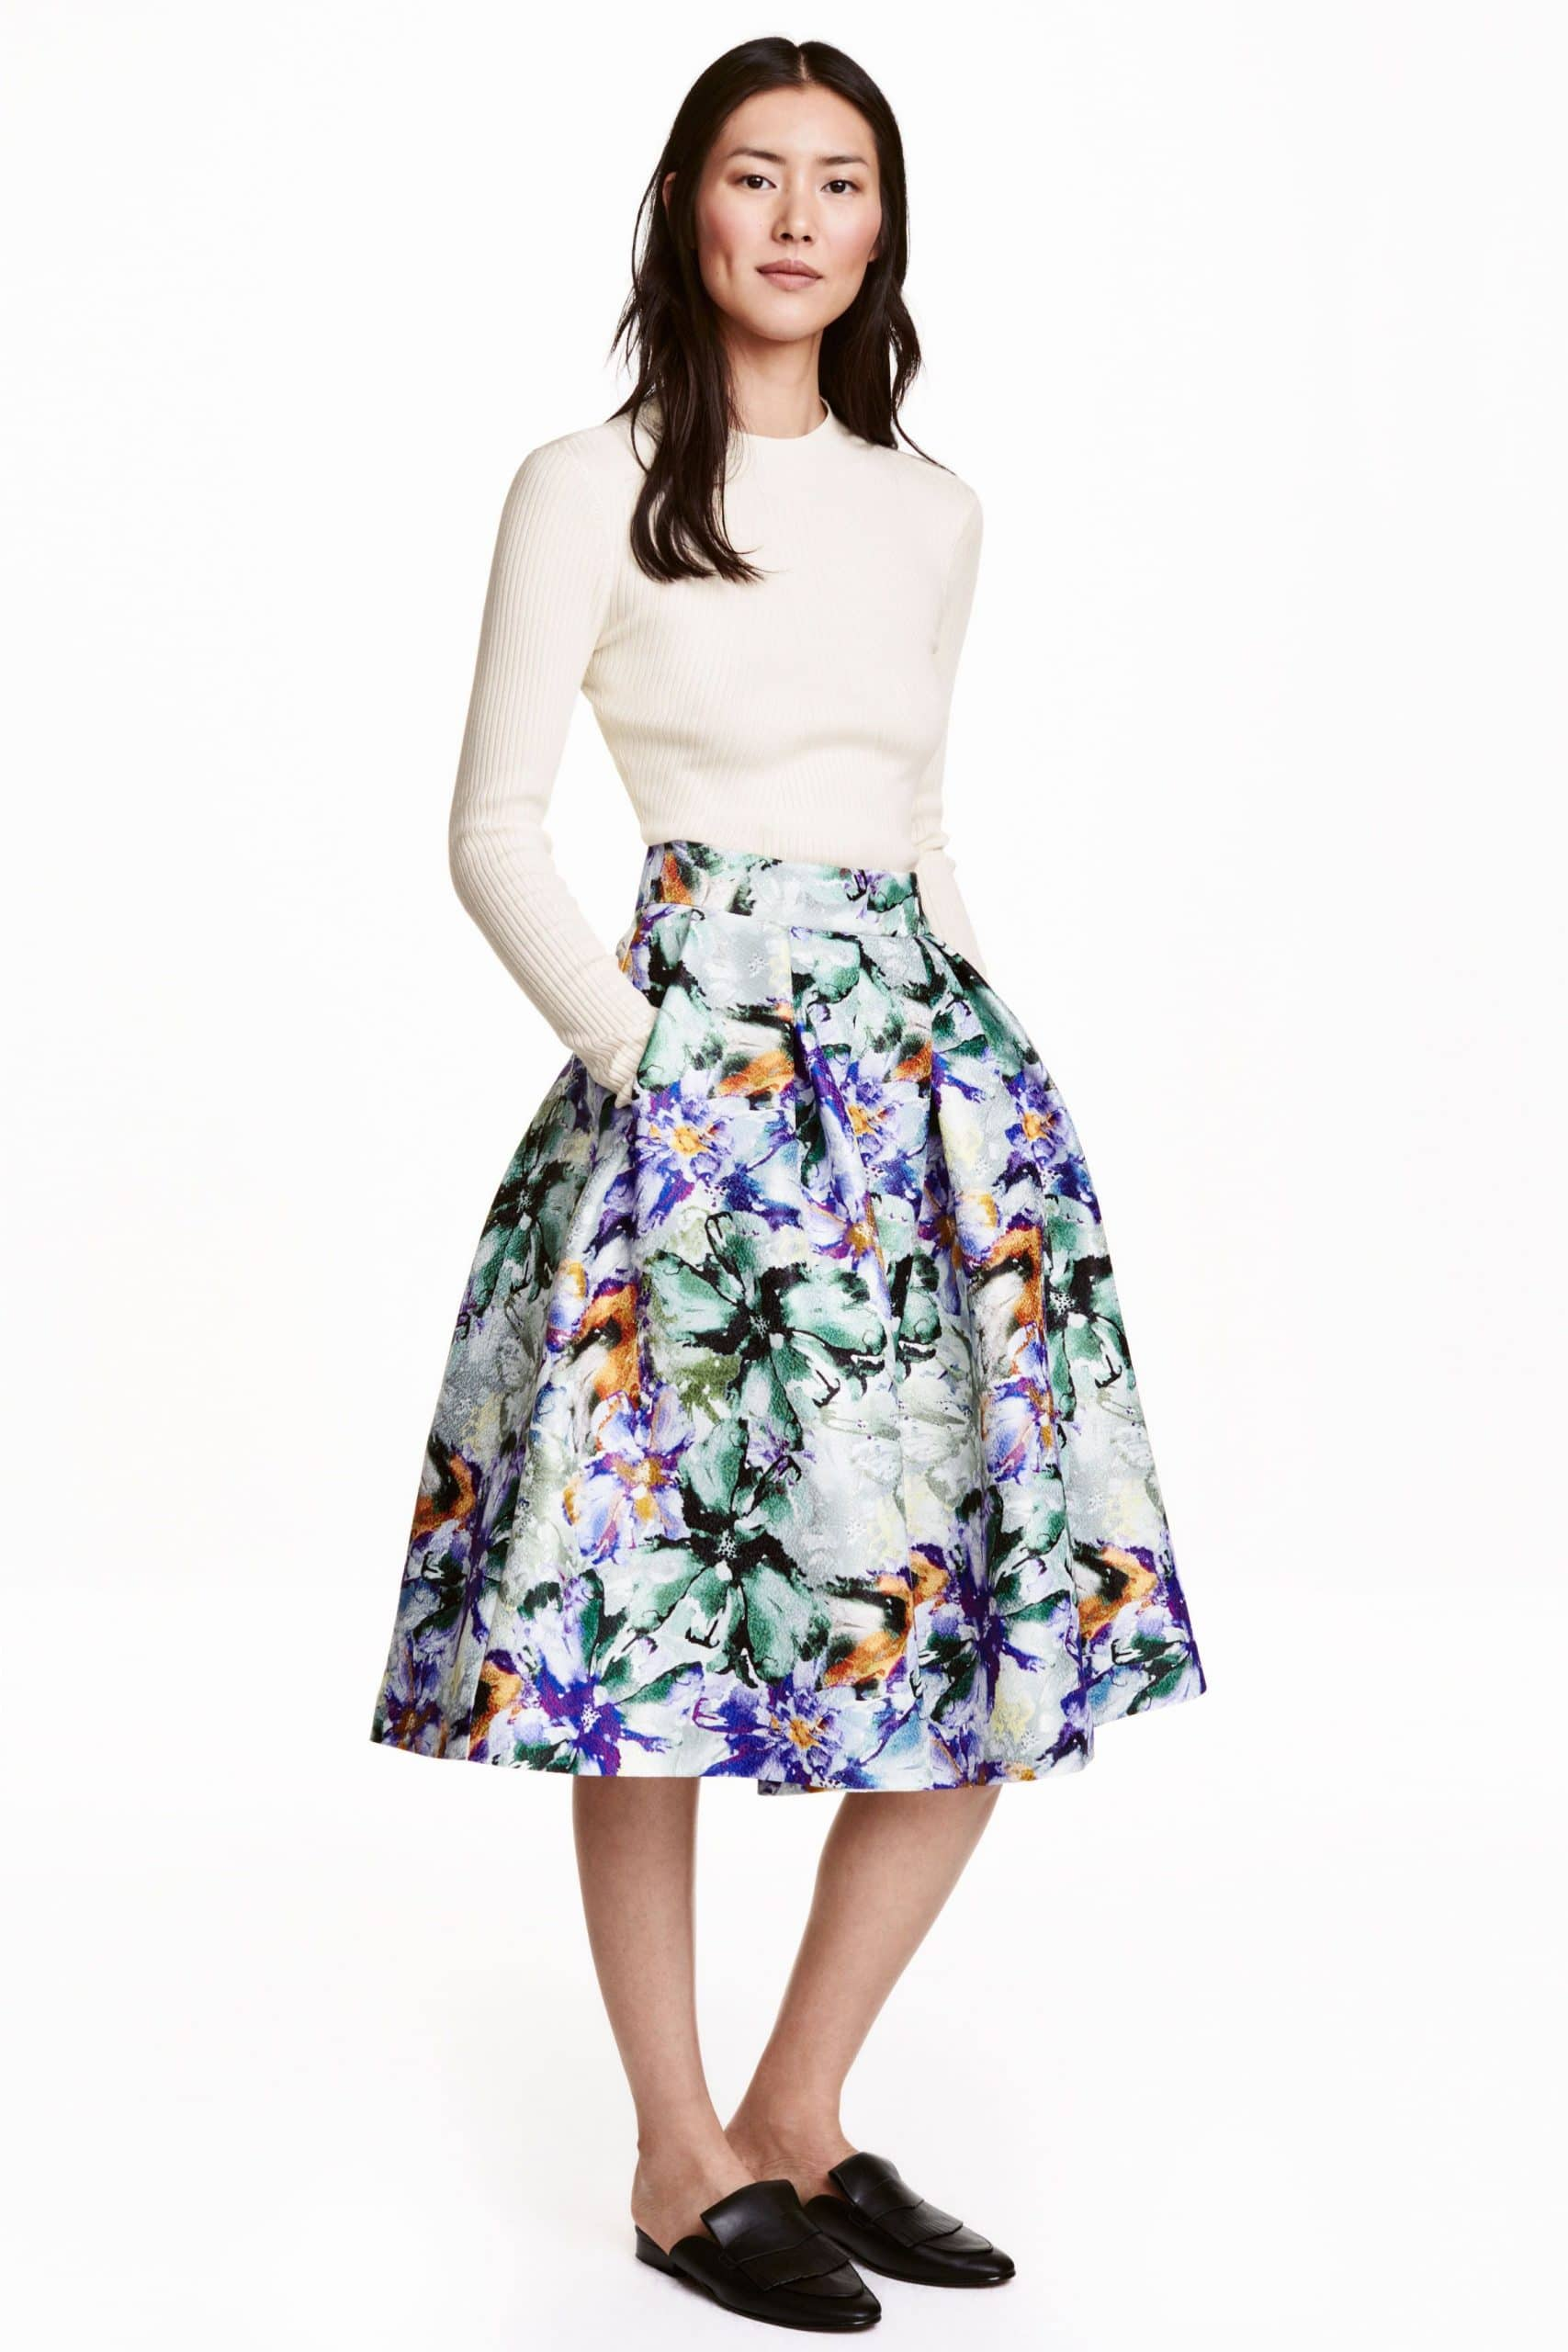 Bell Shaped Skirt